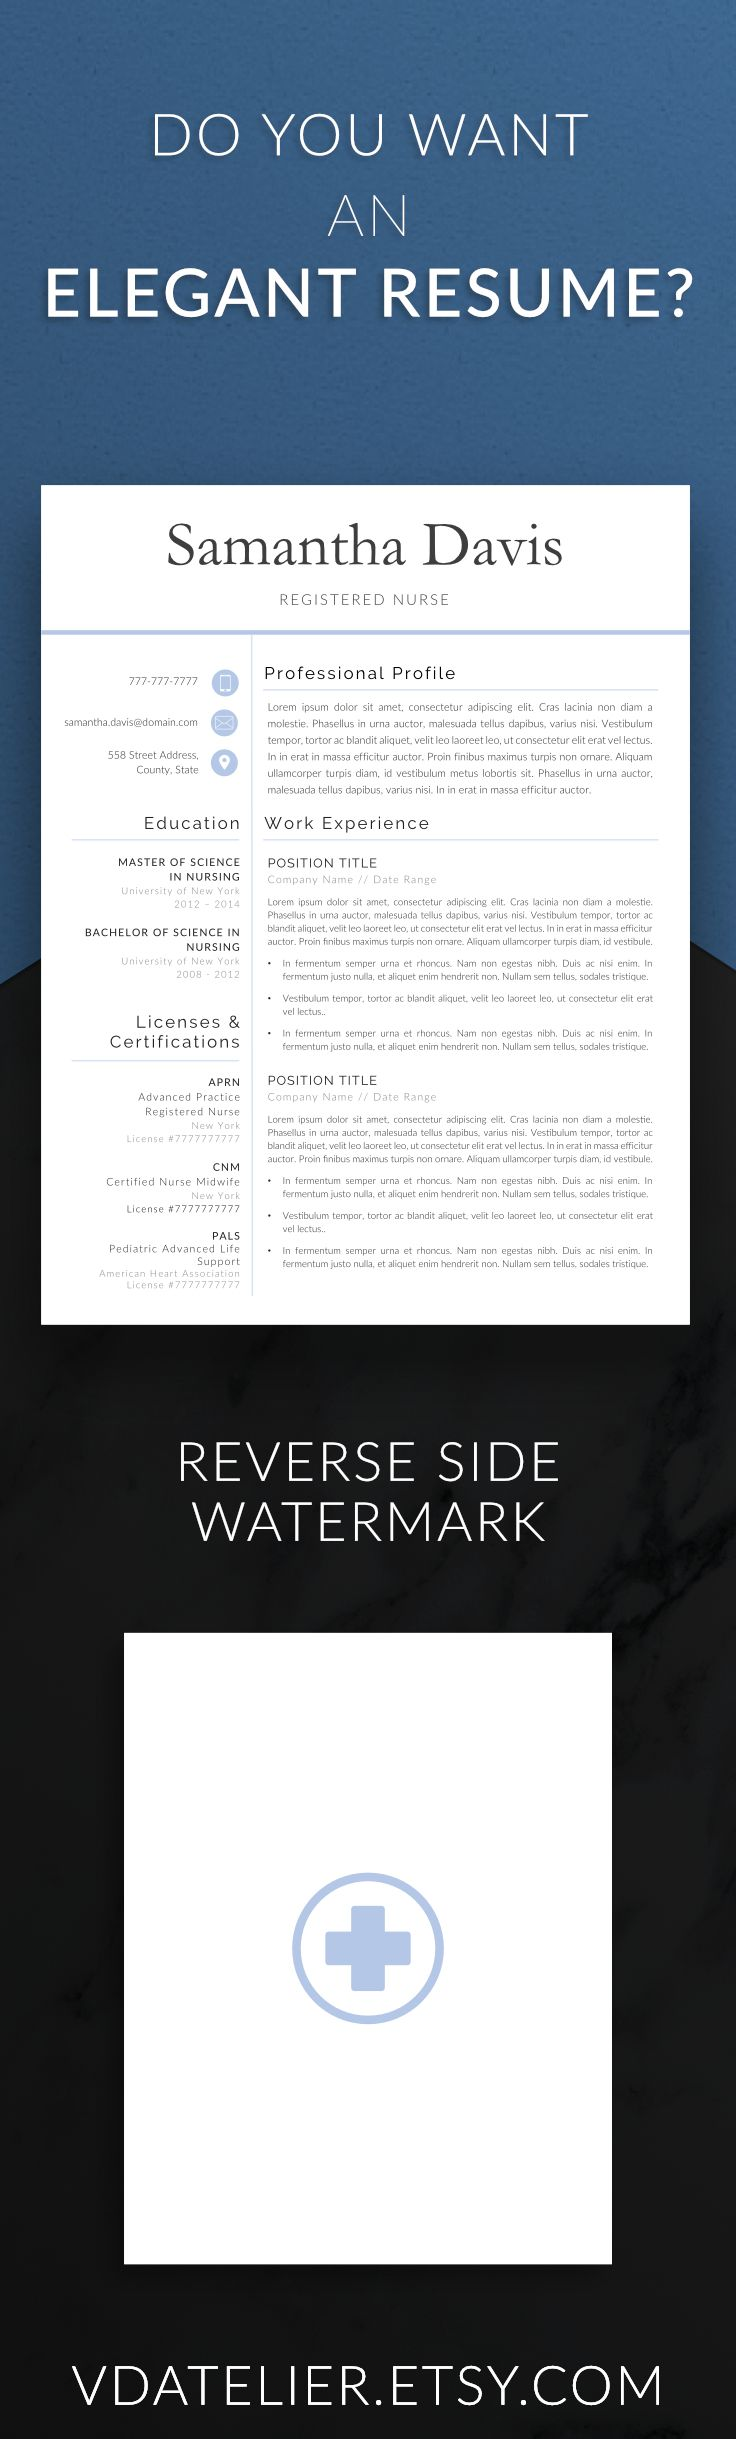 This nurse resume template will enable you to create your